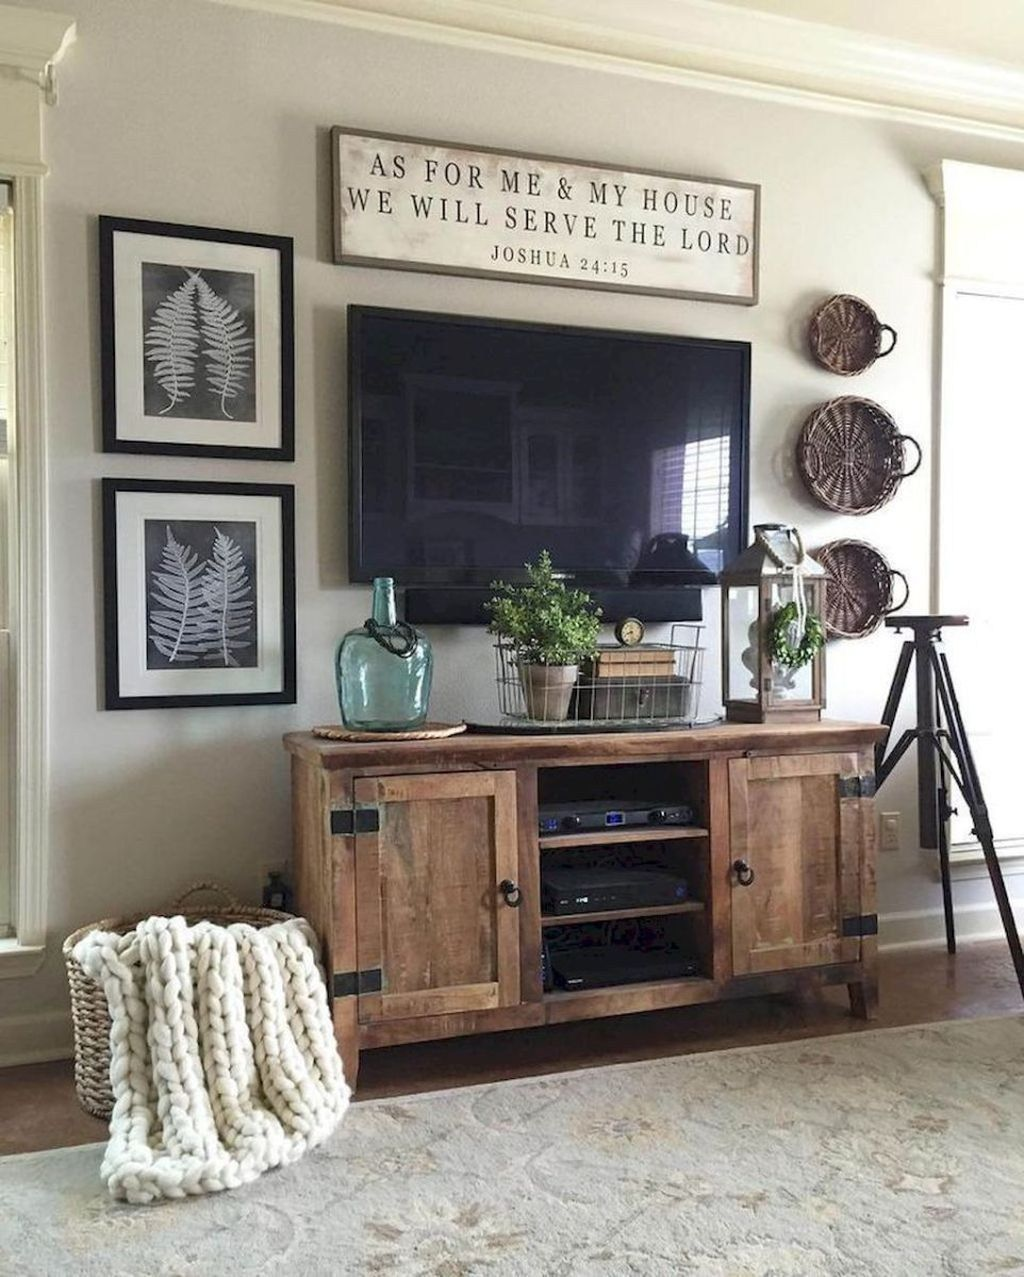 Rustic farmhouse living room decor ideas for tv wall also in rh pinterest